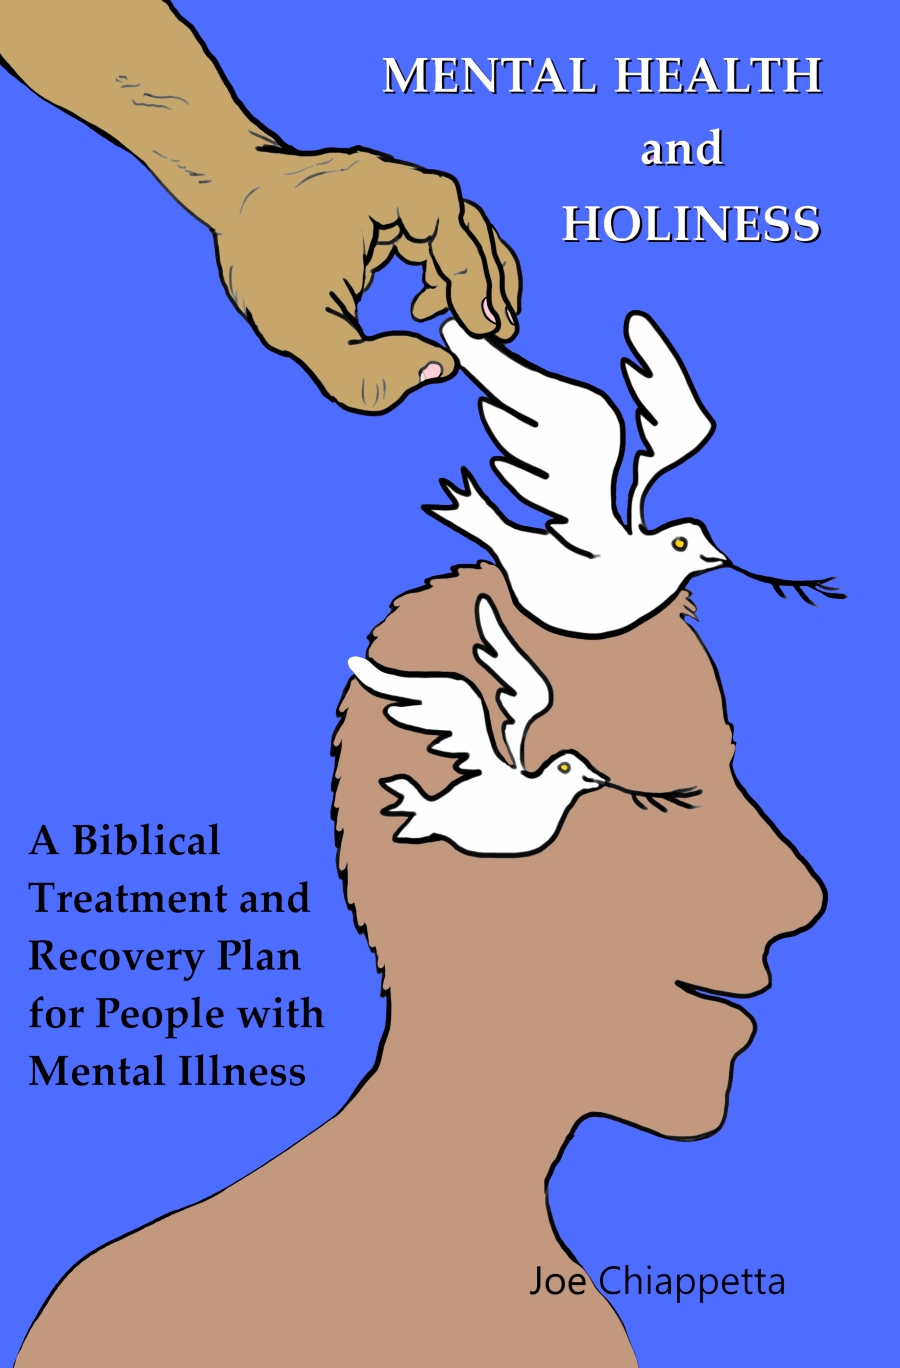 Mental Health and Holiness book ordering page by Joe Chiappetta